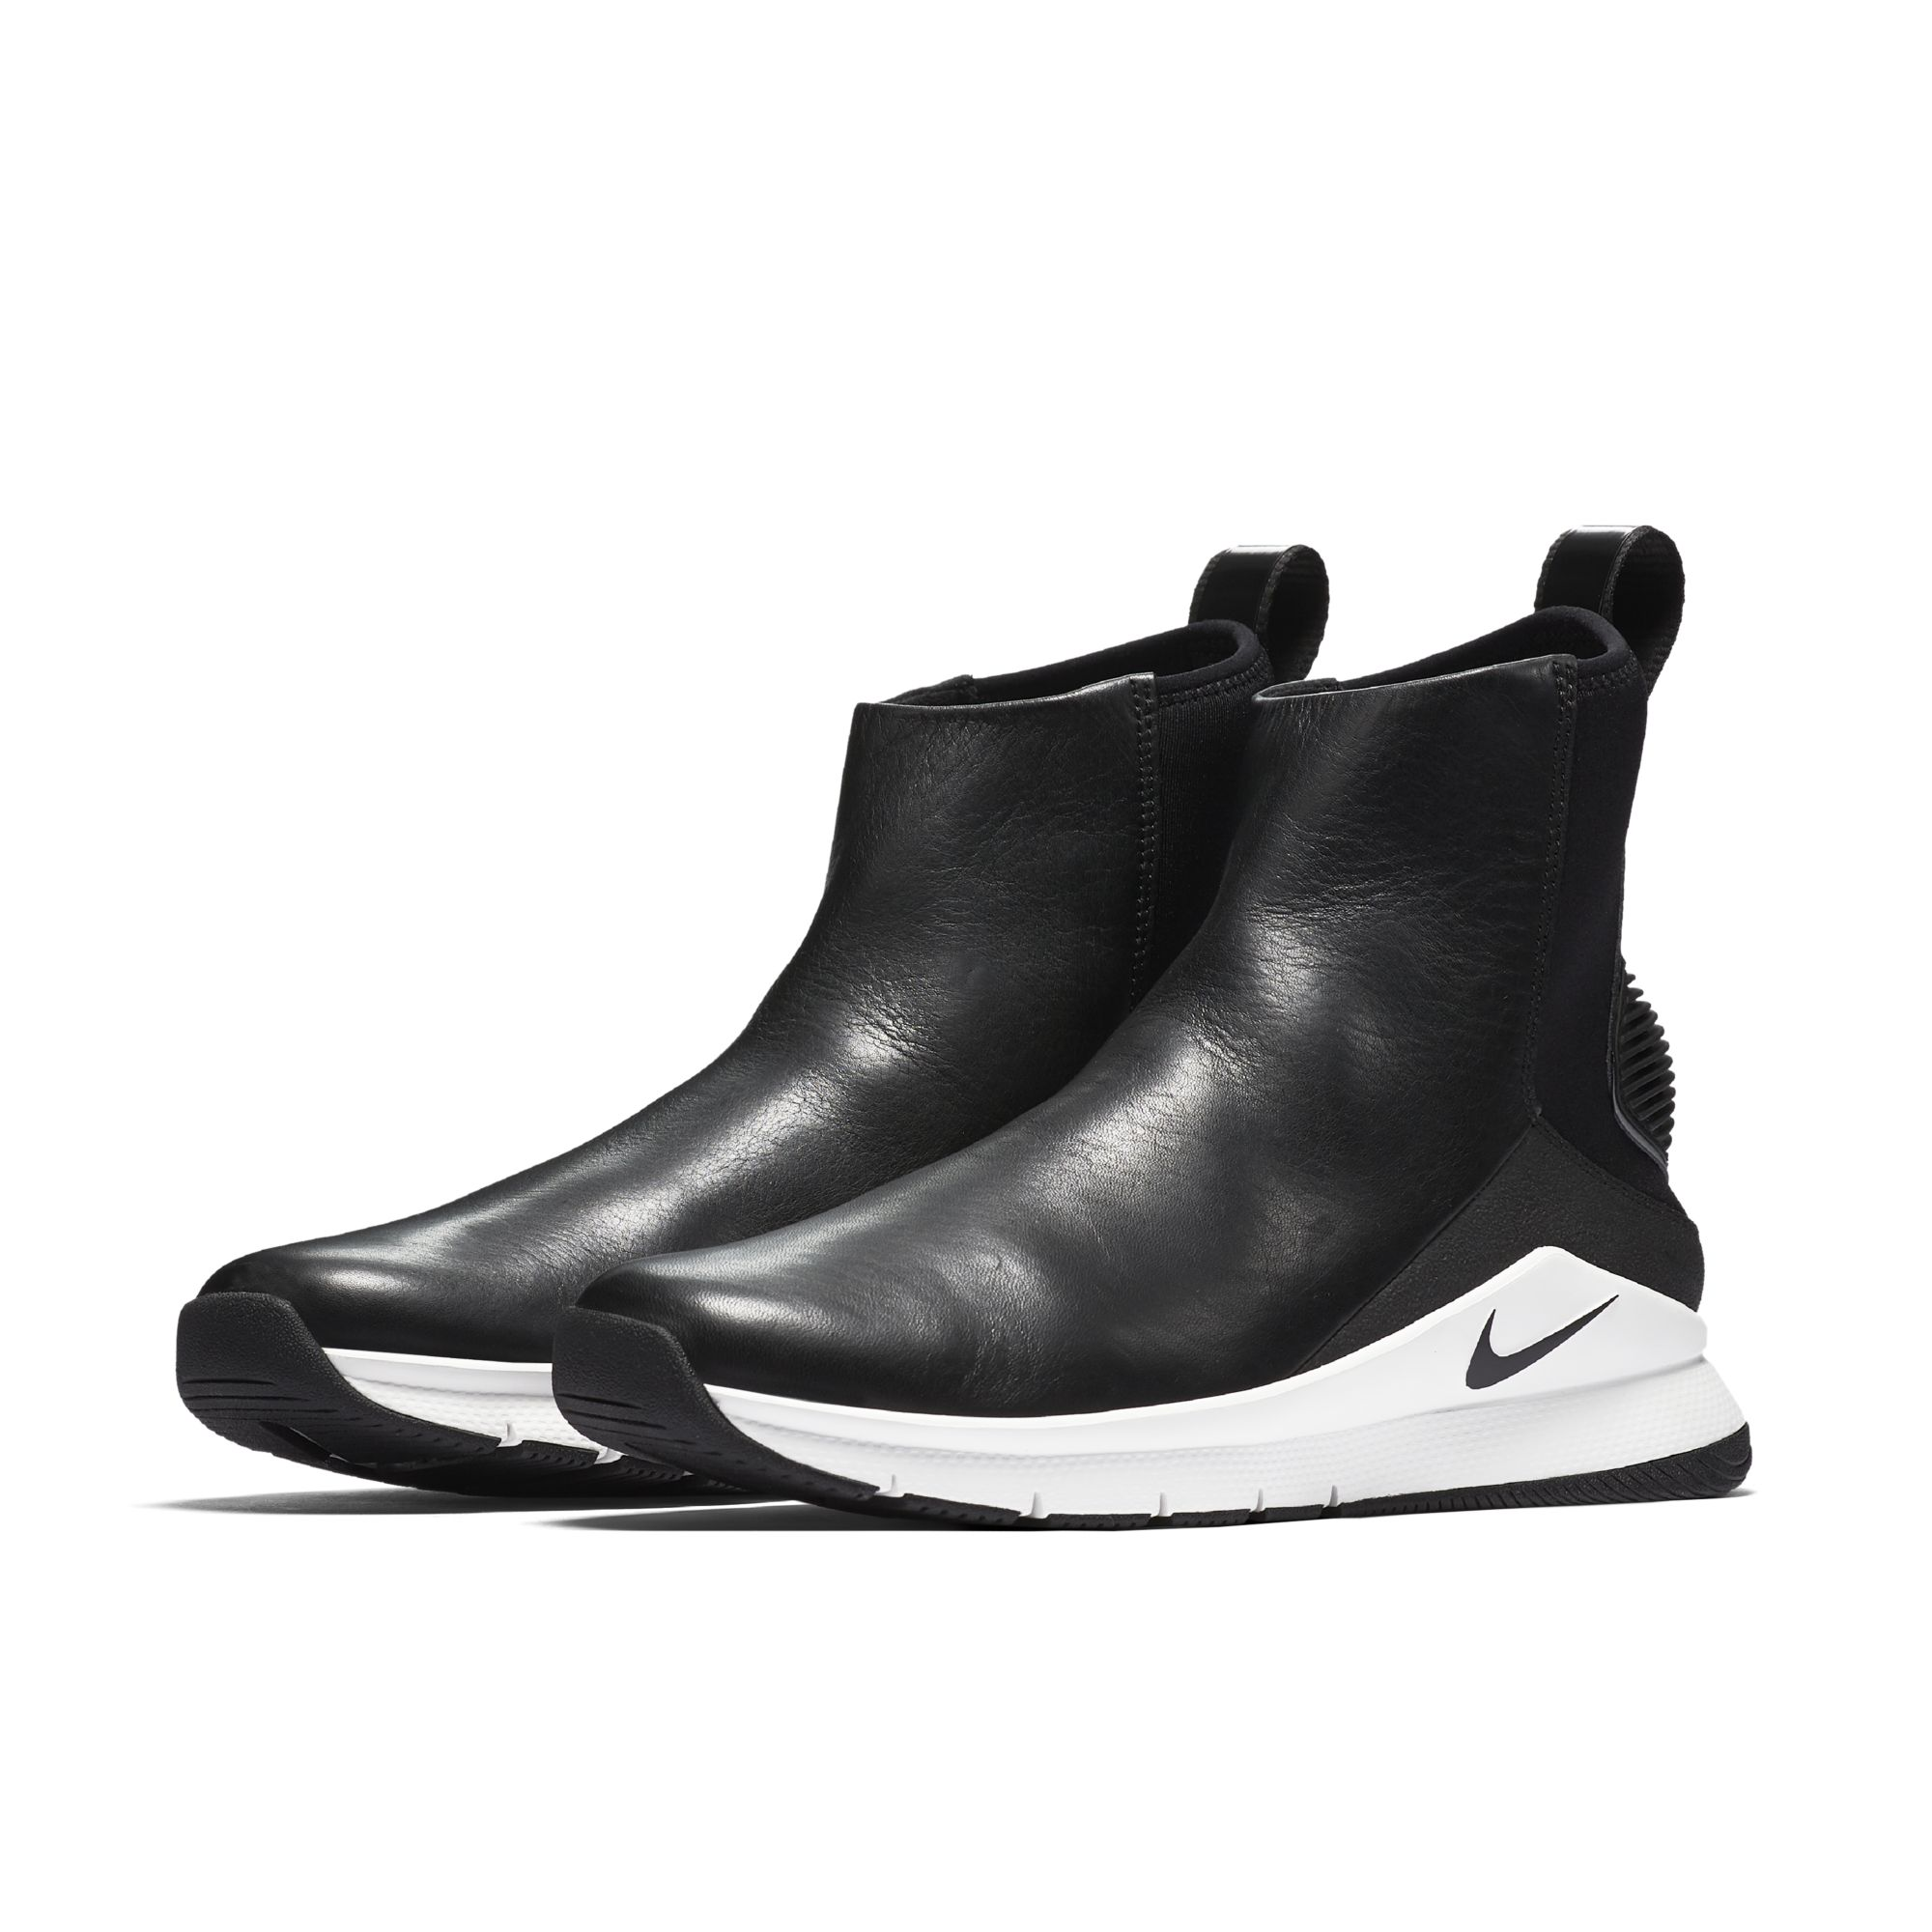 Nike Has a New Minimalist Boot, the Rivah High Premium - WearTesters